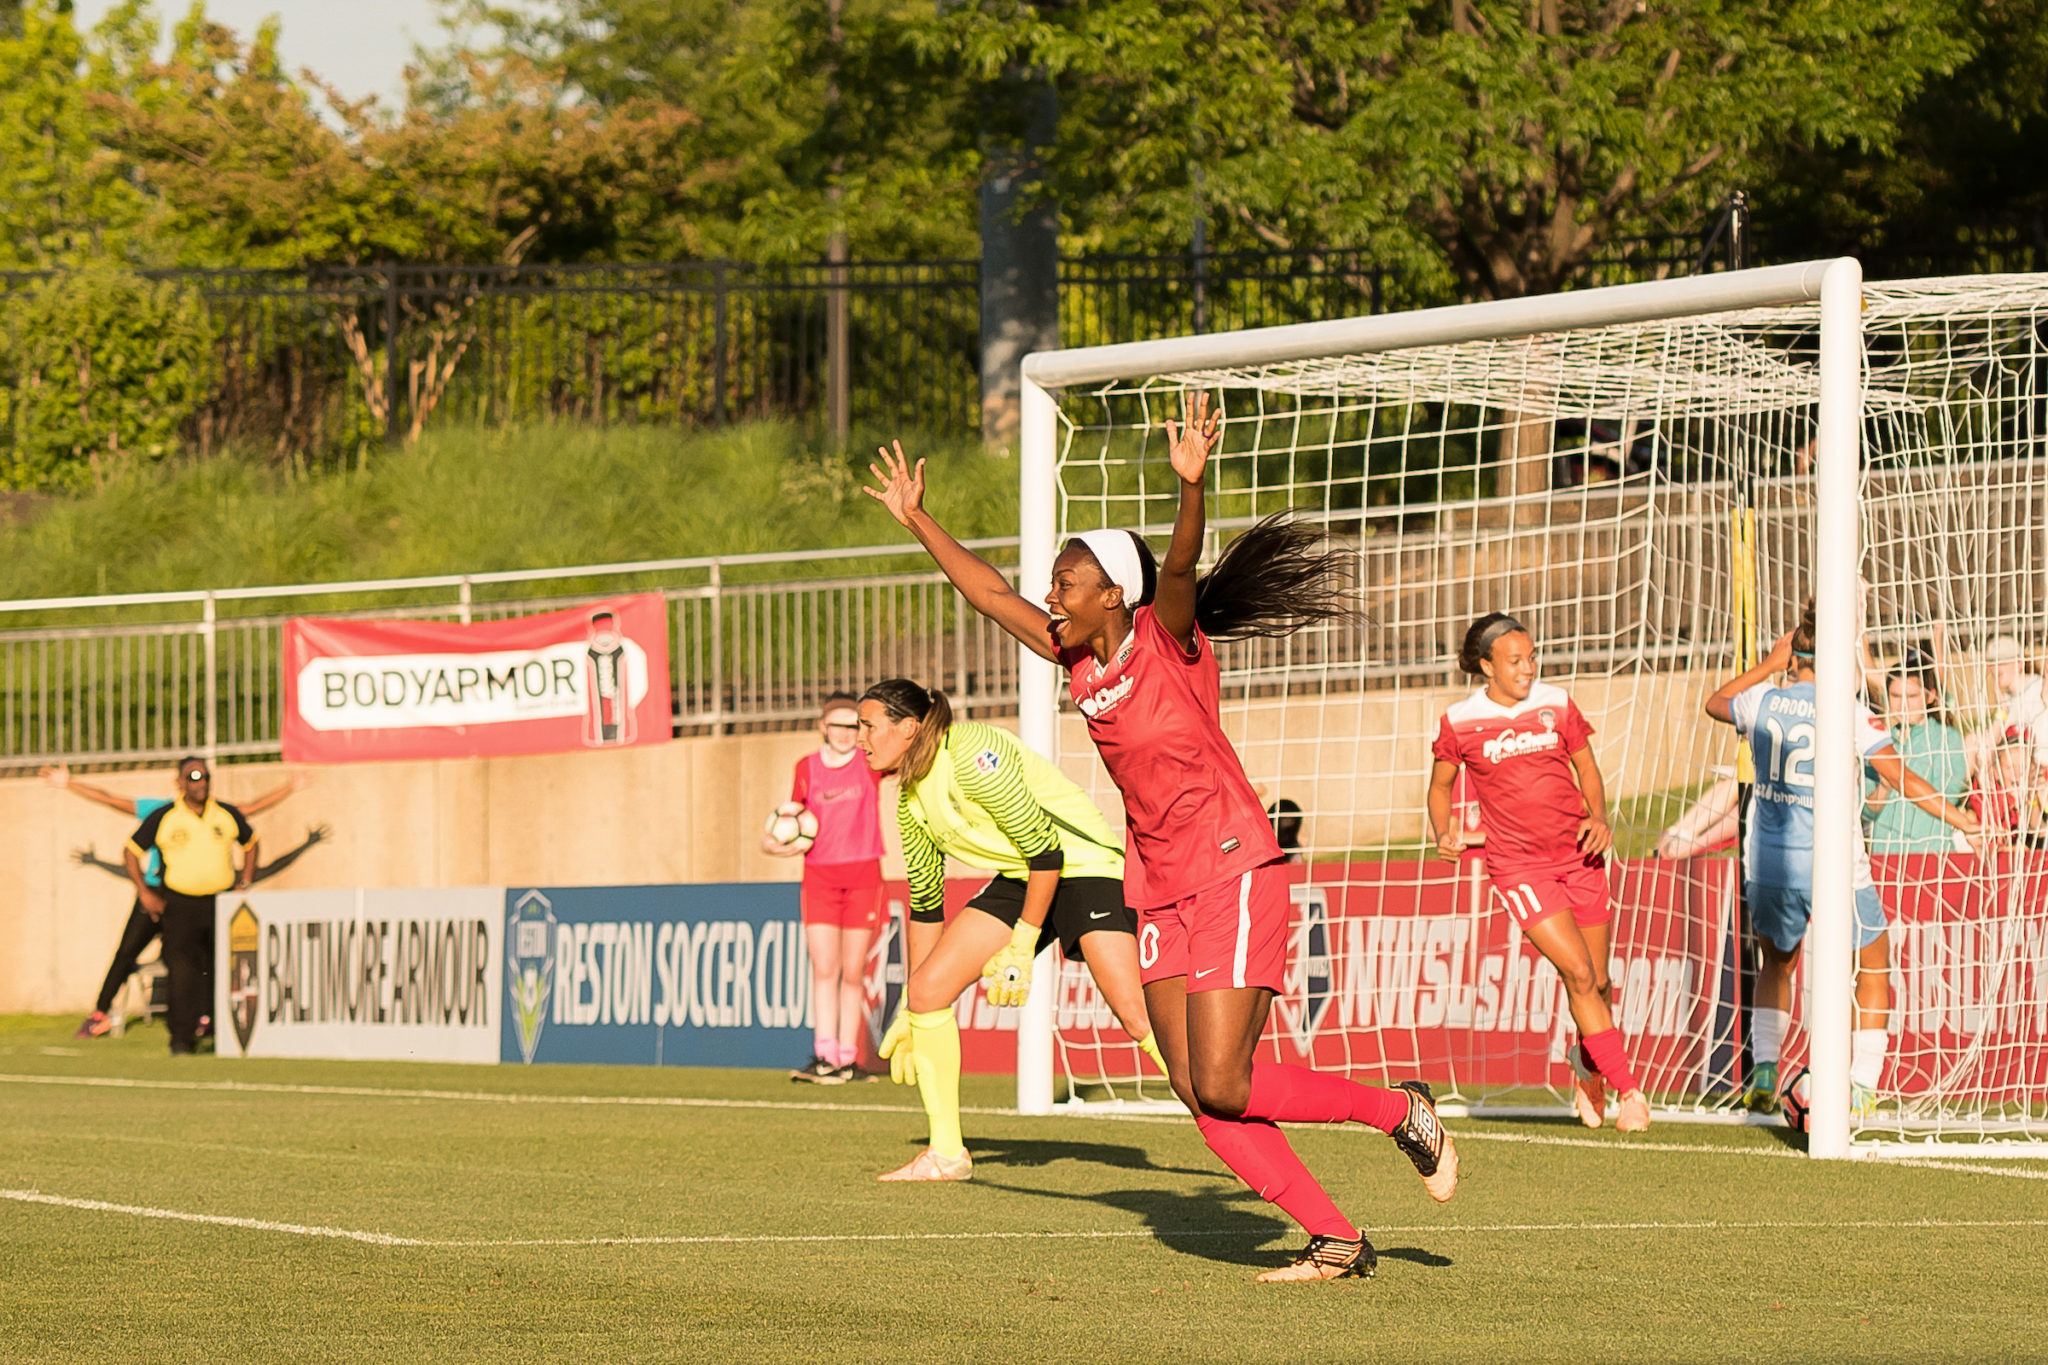 """Cheyna Williams- The 23-year old forward describes playing for the Washing Spirit as """"a dream come true."""""""